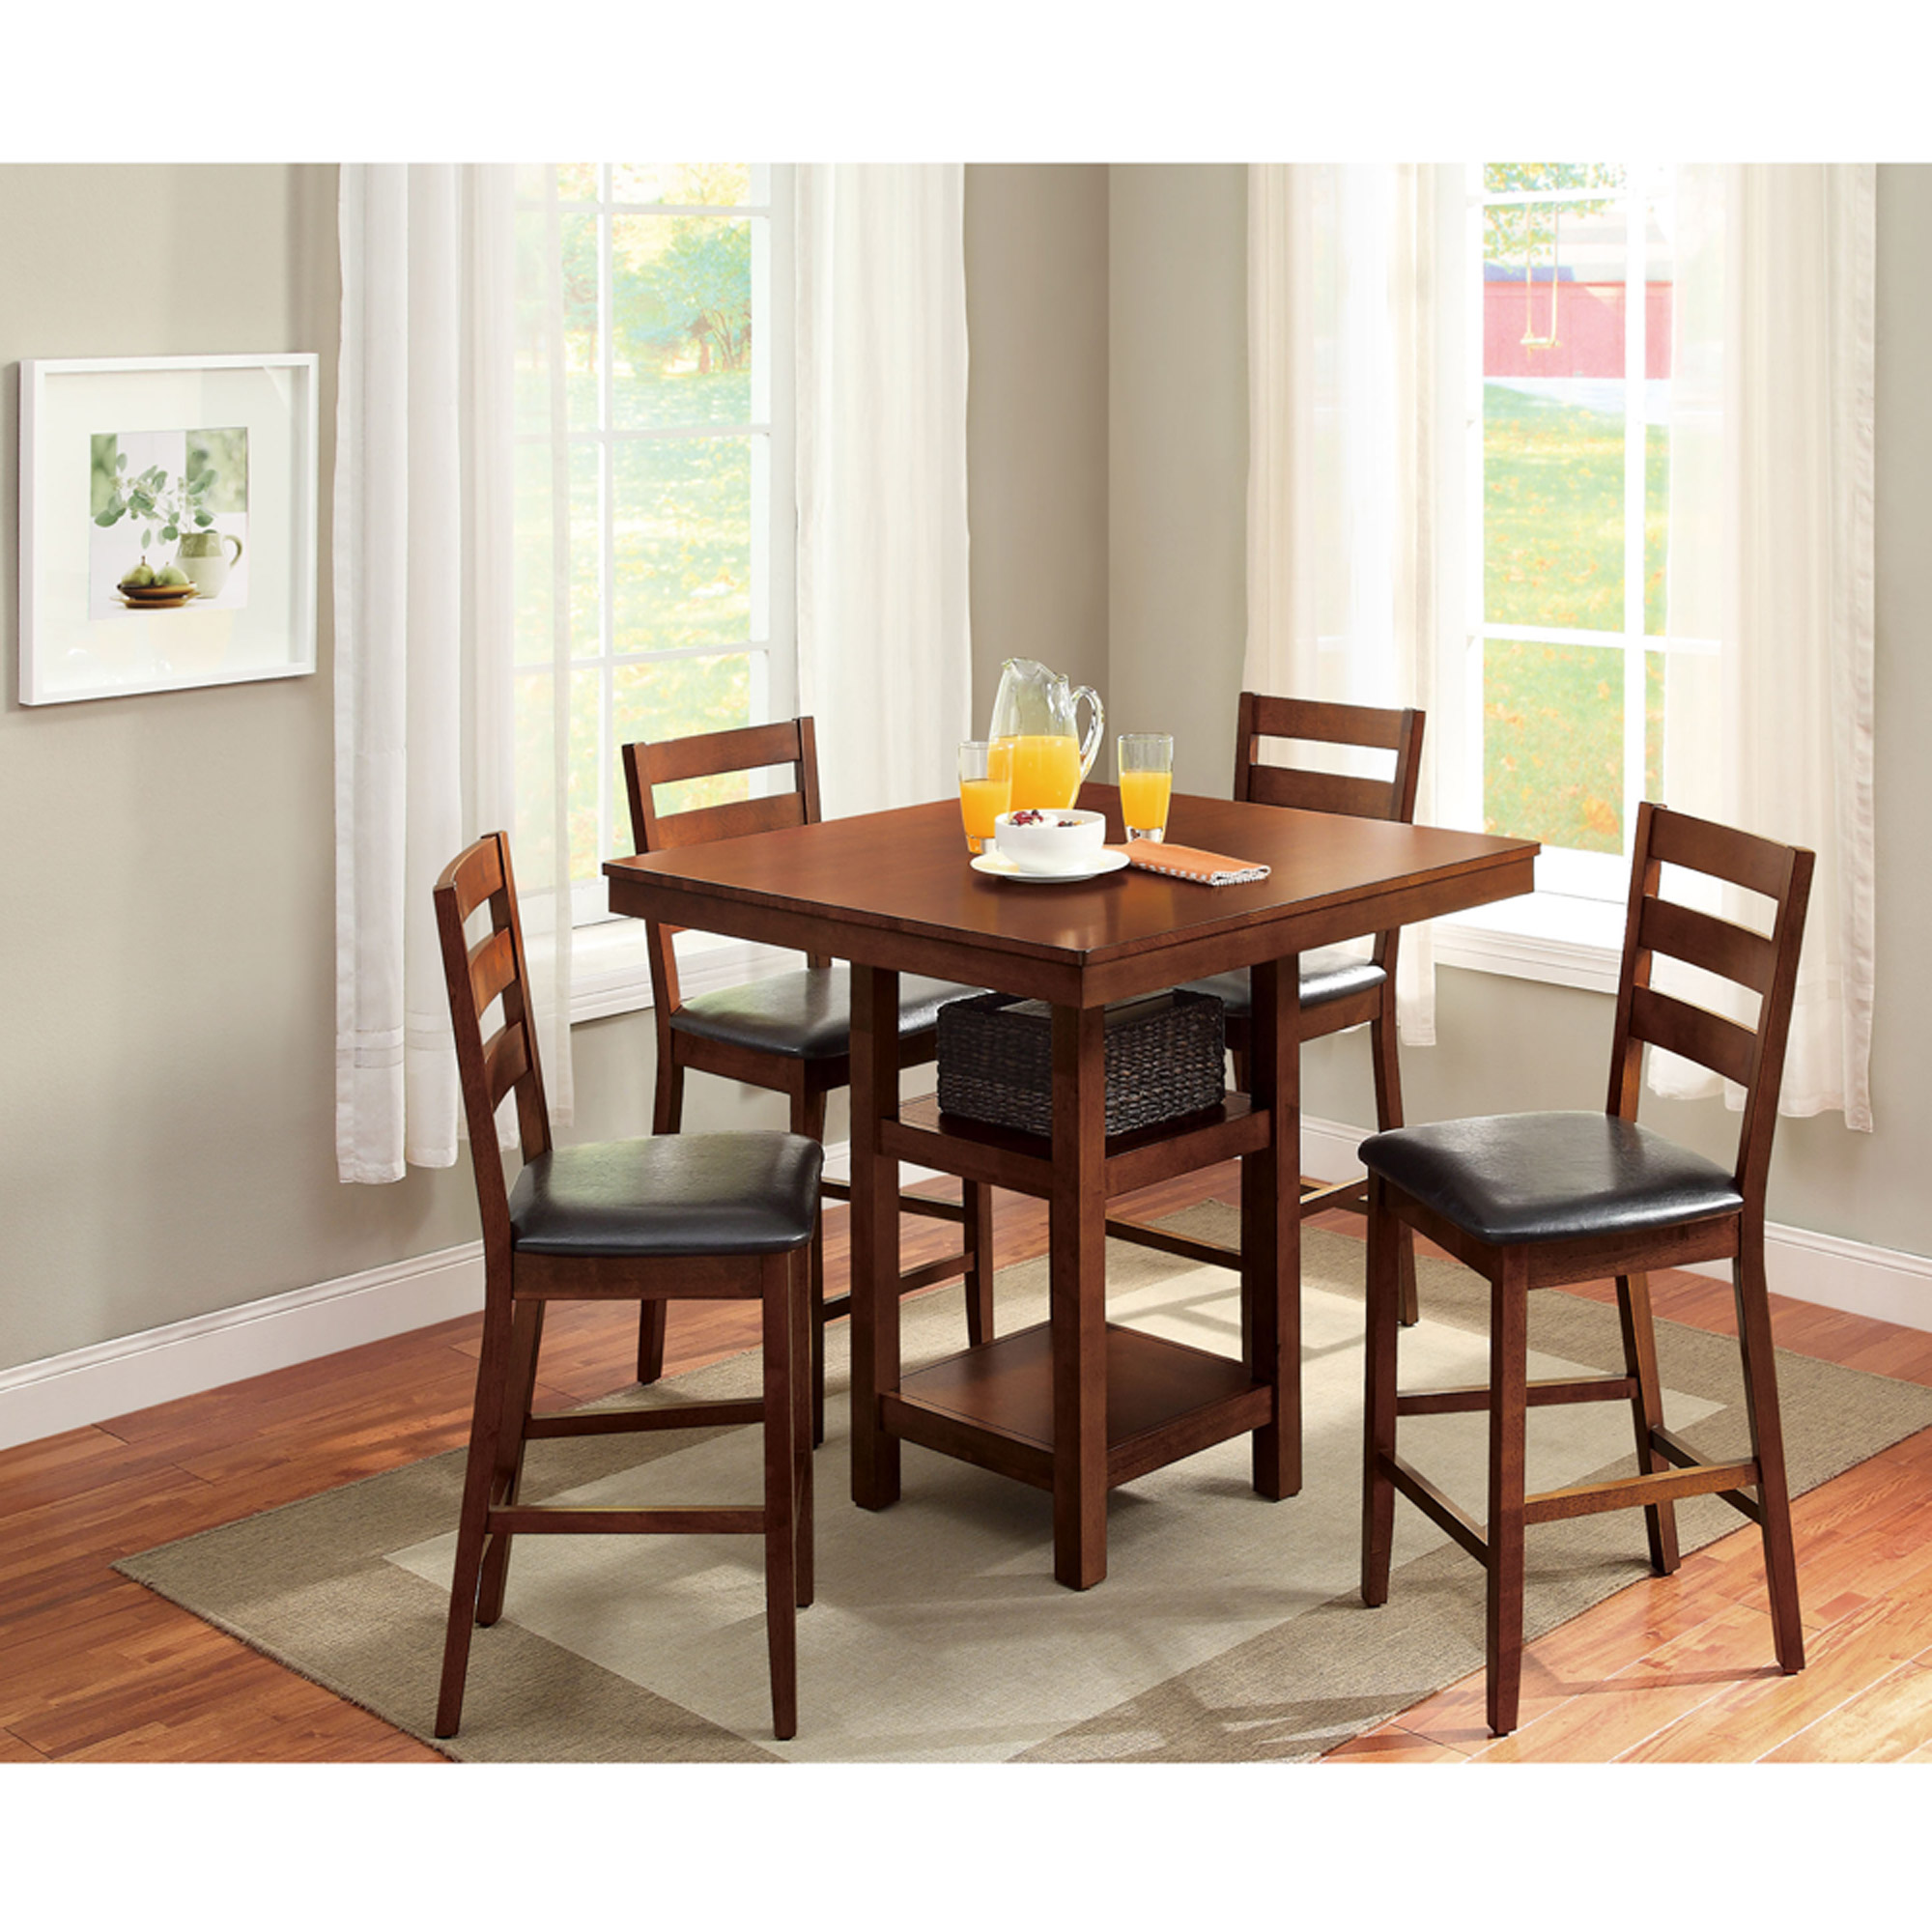 Better Homes and Gardens Dalton Park 5-Piece Counter Height Dining Set, Mocha